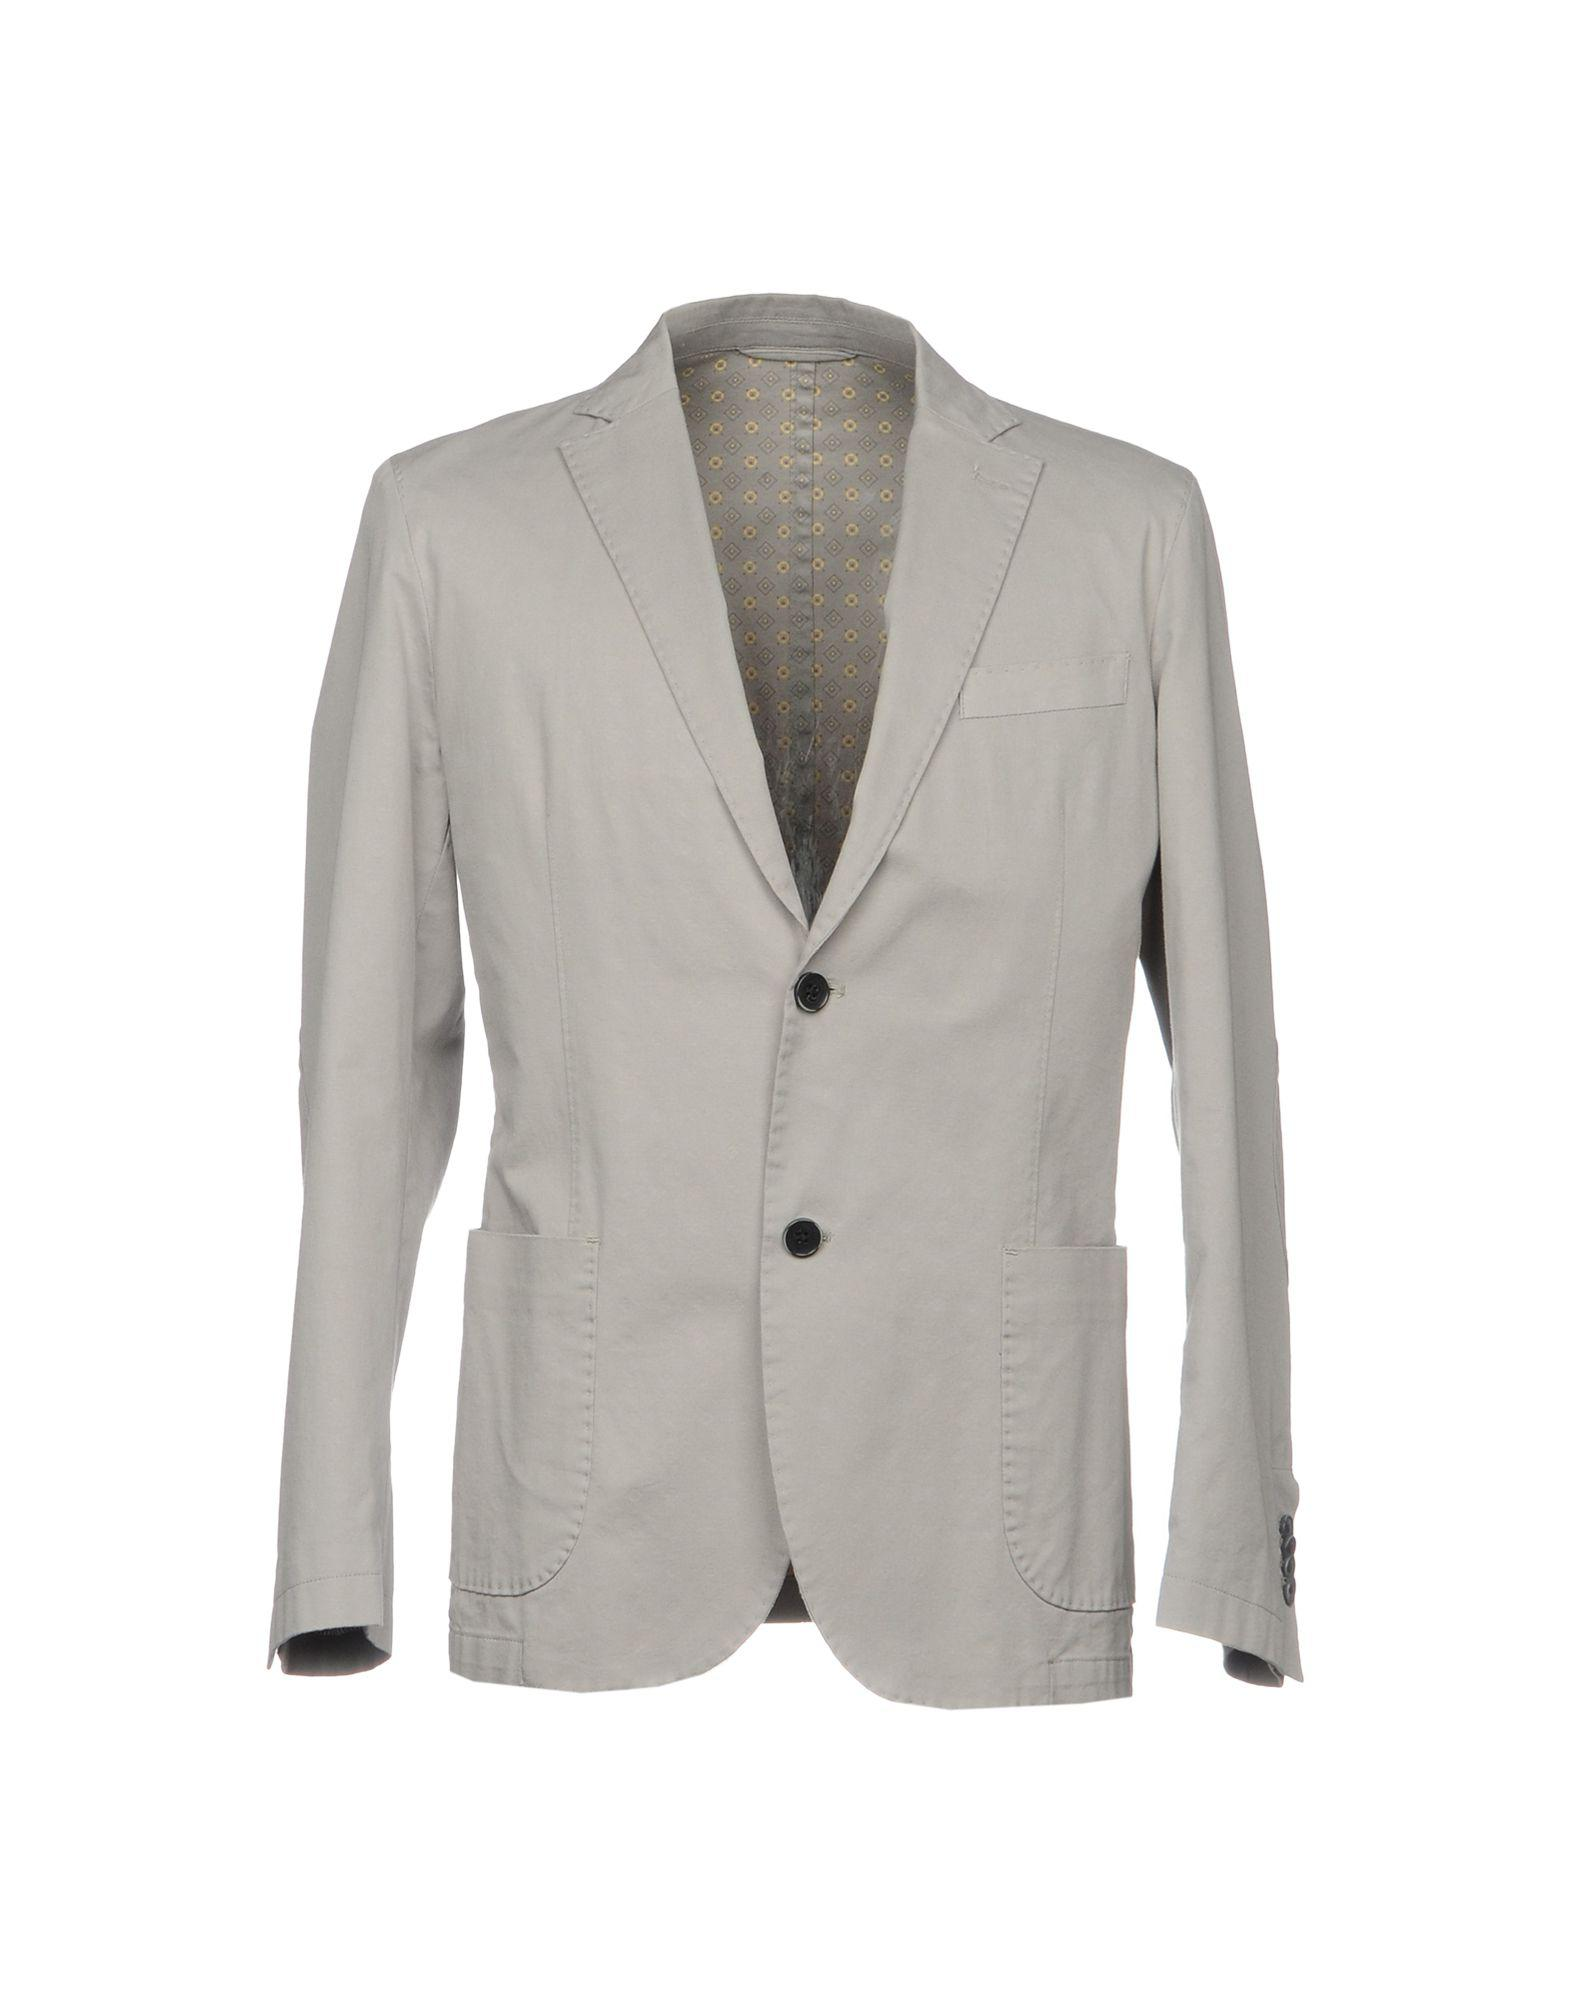 SUITS AND JACKETS - Waistcoats Trussardi